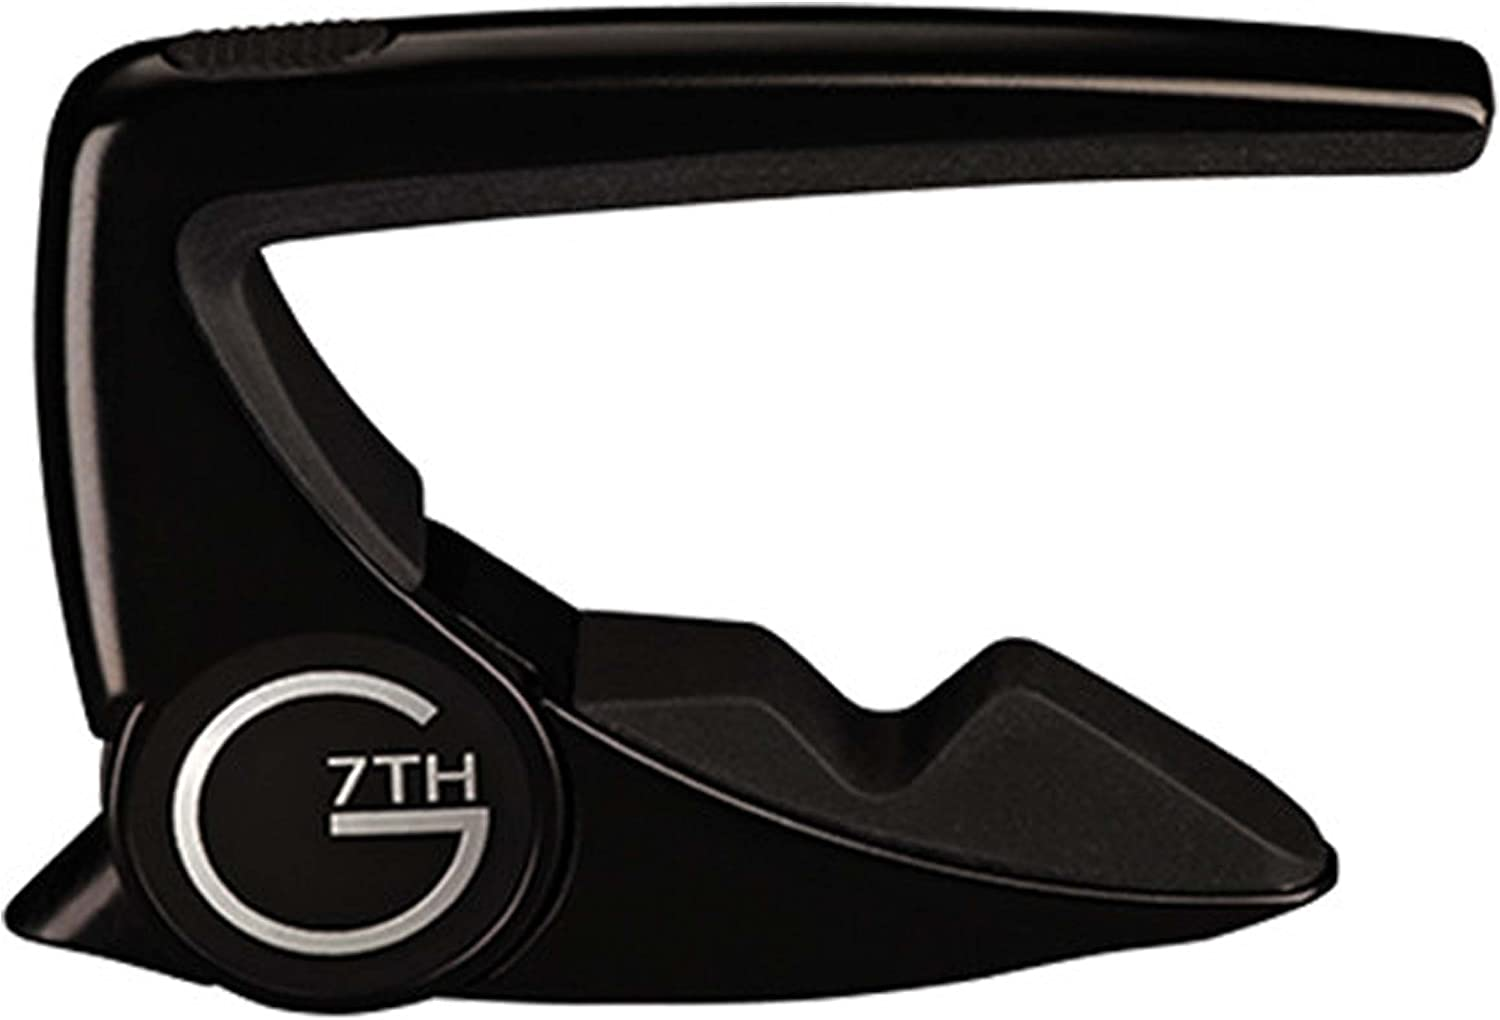 G7th Performance 2 Steel String Guitar Capo for 6-String ElectricAcoustic Guita